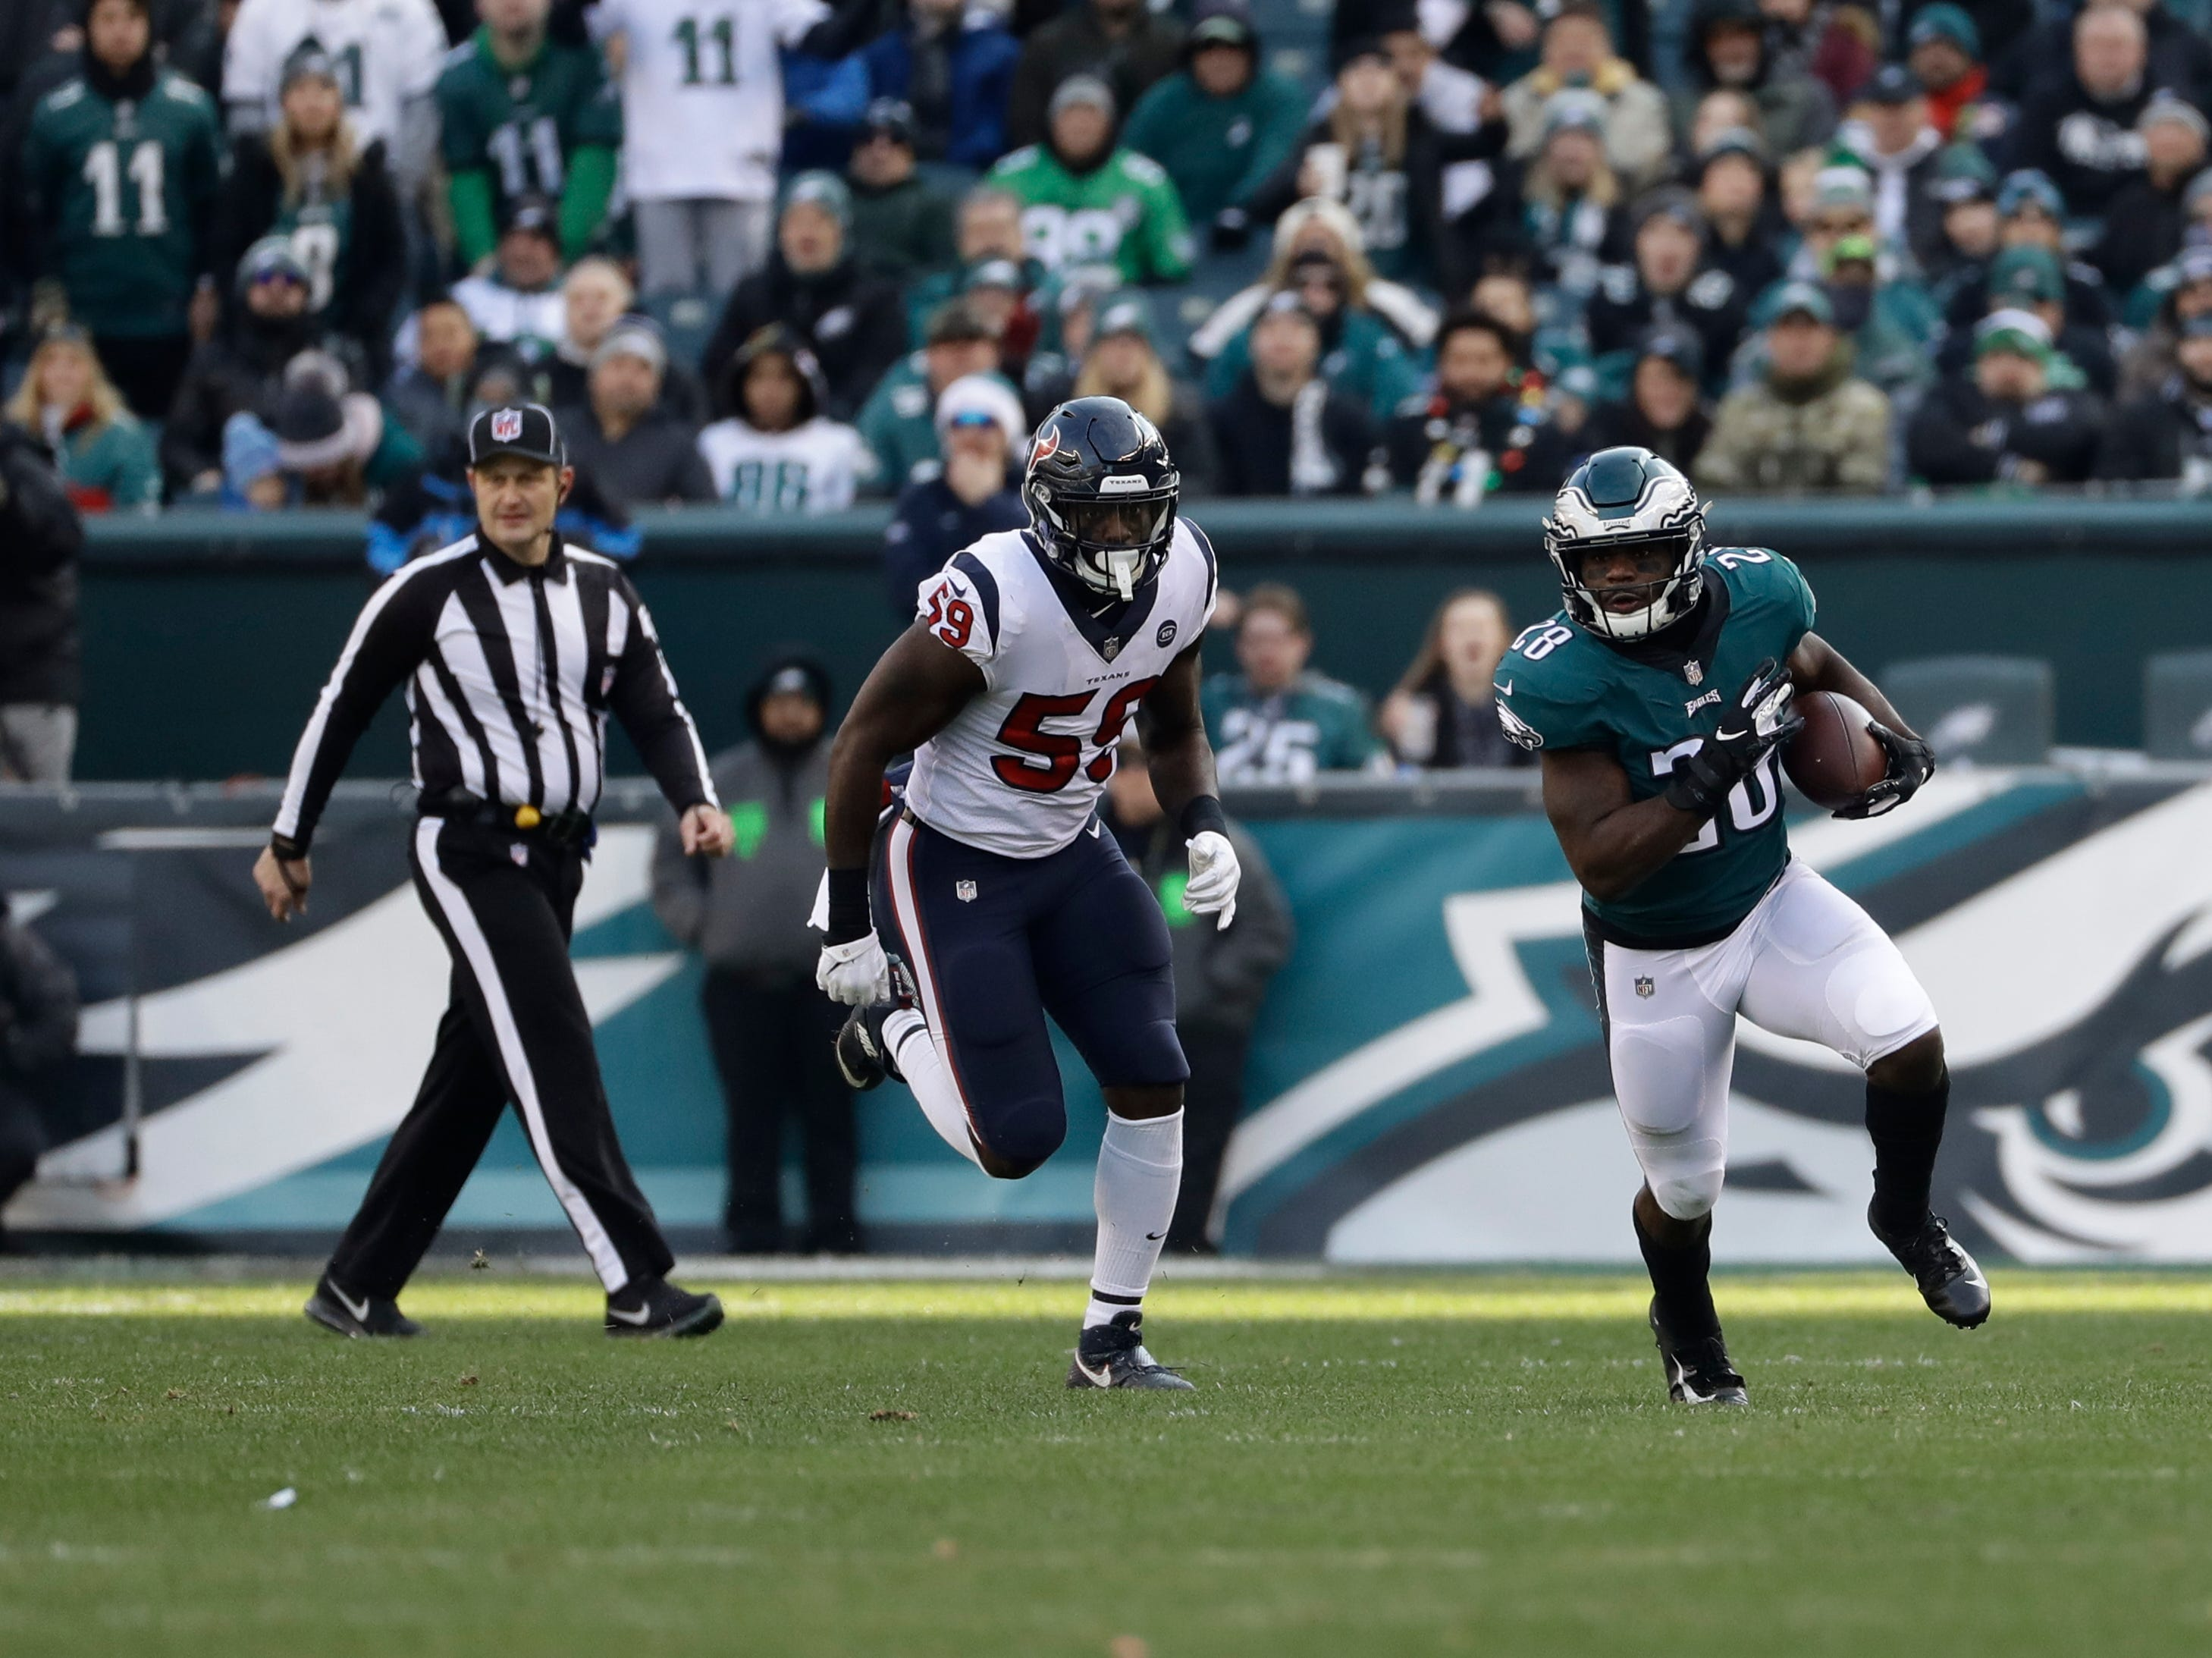 Philadelphia Eagles' Wendell Smallwood in action during the first half of an NFL football game against the Houston Texans, Sunday, Dec. 23, 2018, in Philadelphia. (AP Photo/Michael Perez)